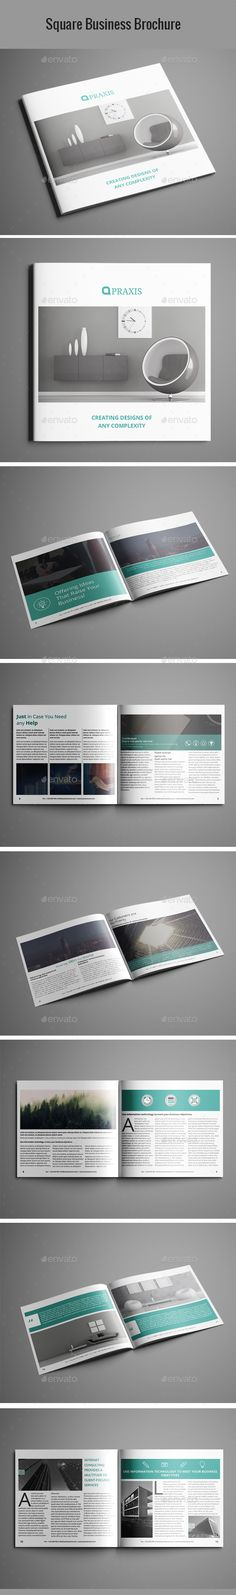 Architecture Brochure Template InDesign INDD Download here